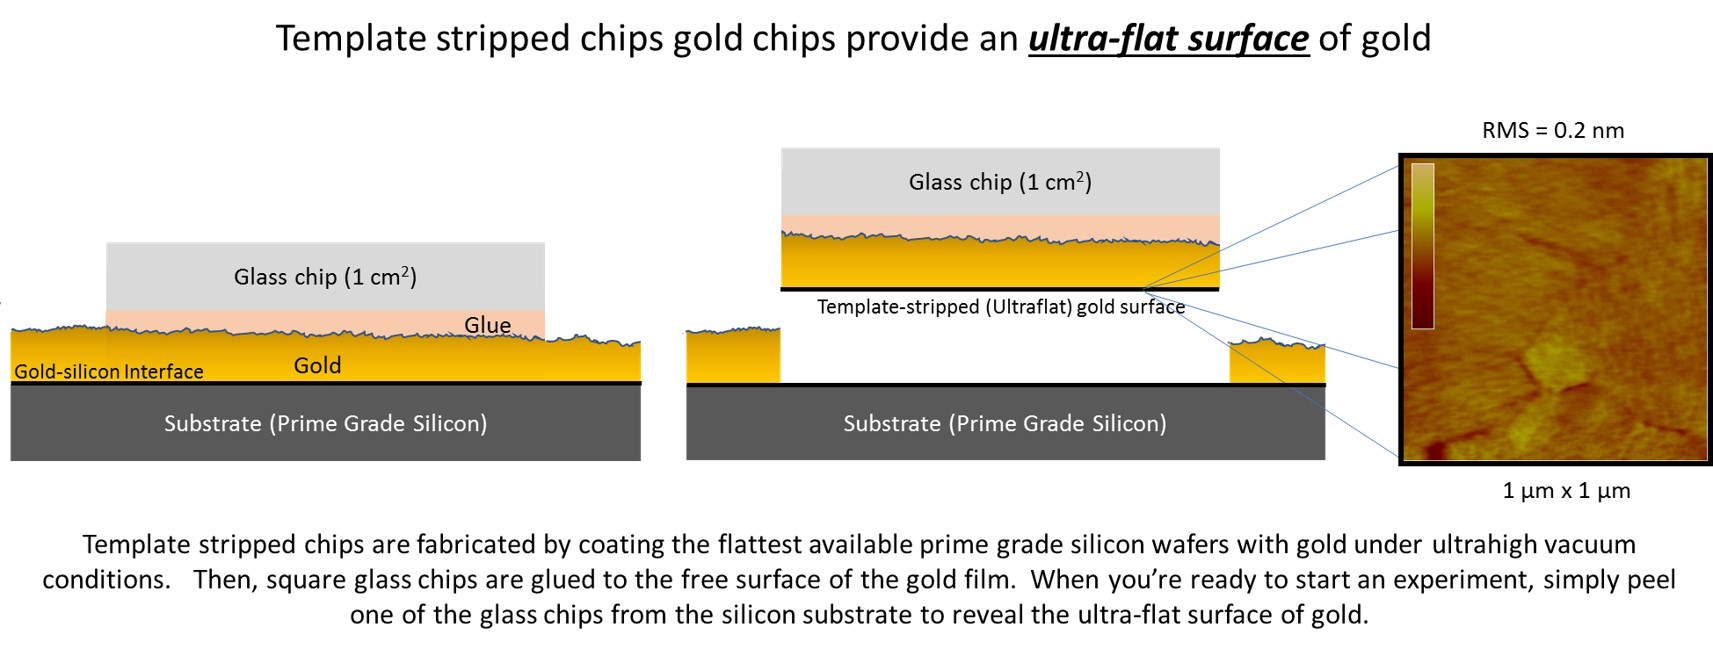 ultra flat gold films platypus template stripped gold chips